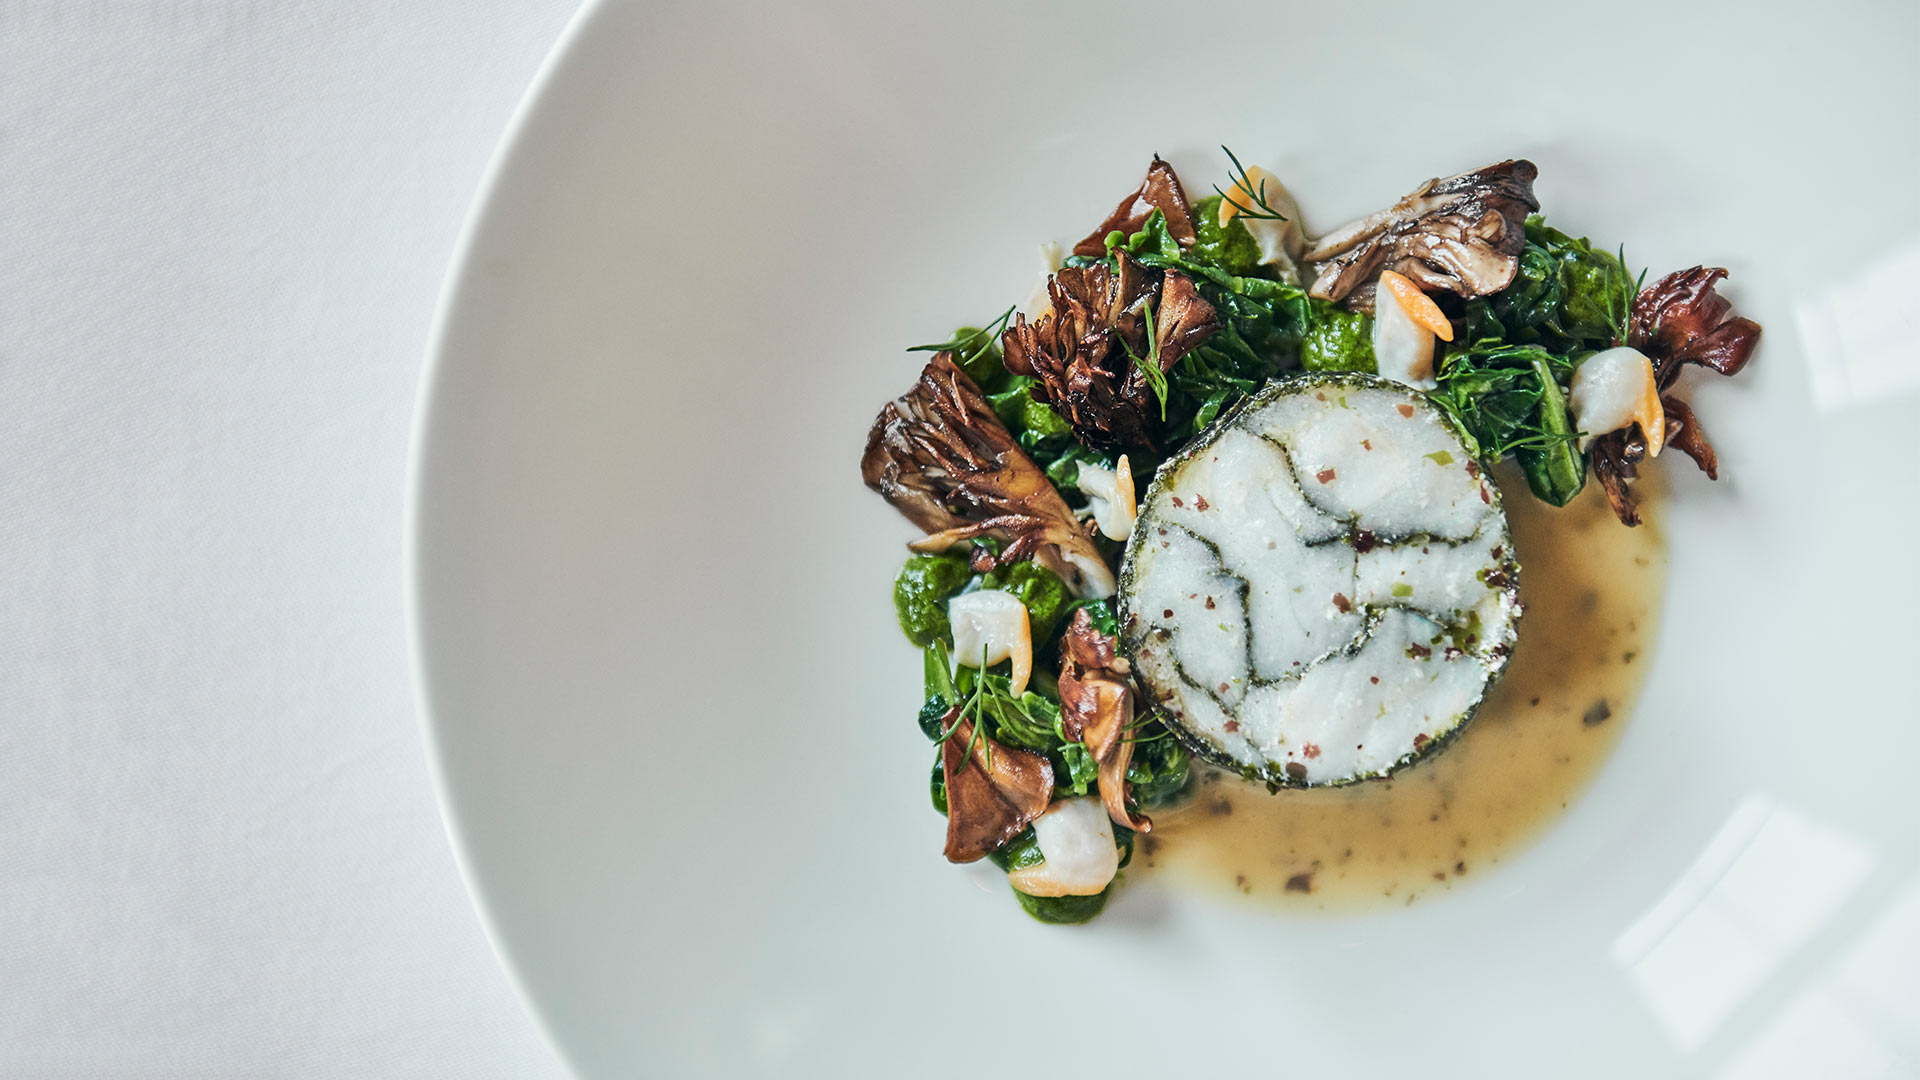 Day-boat-Cornish-cod,-sea-herbs,-cockles,-hen-of-the-wood-1920x1080